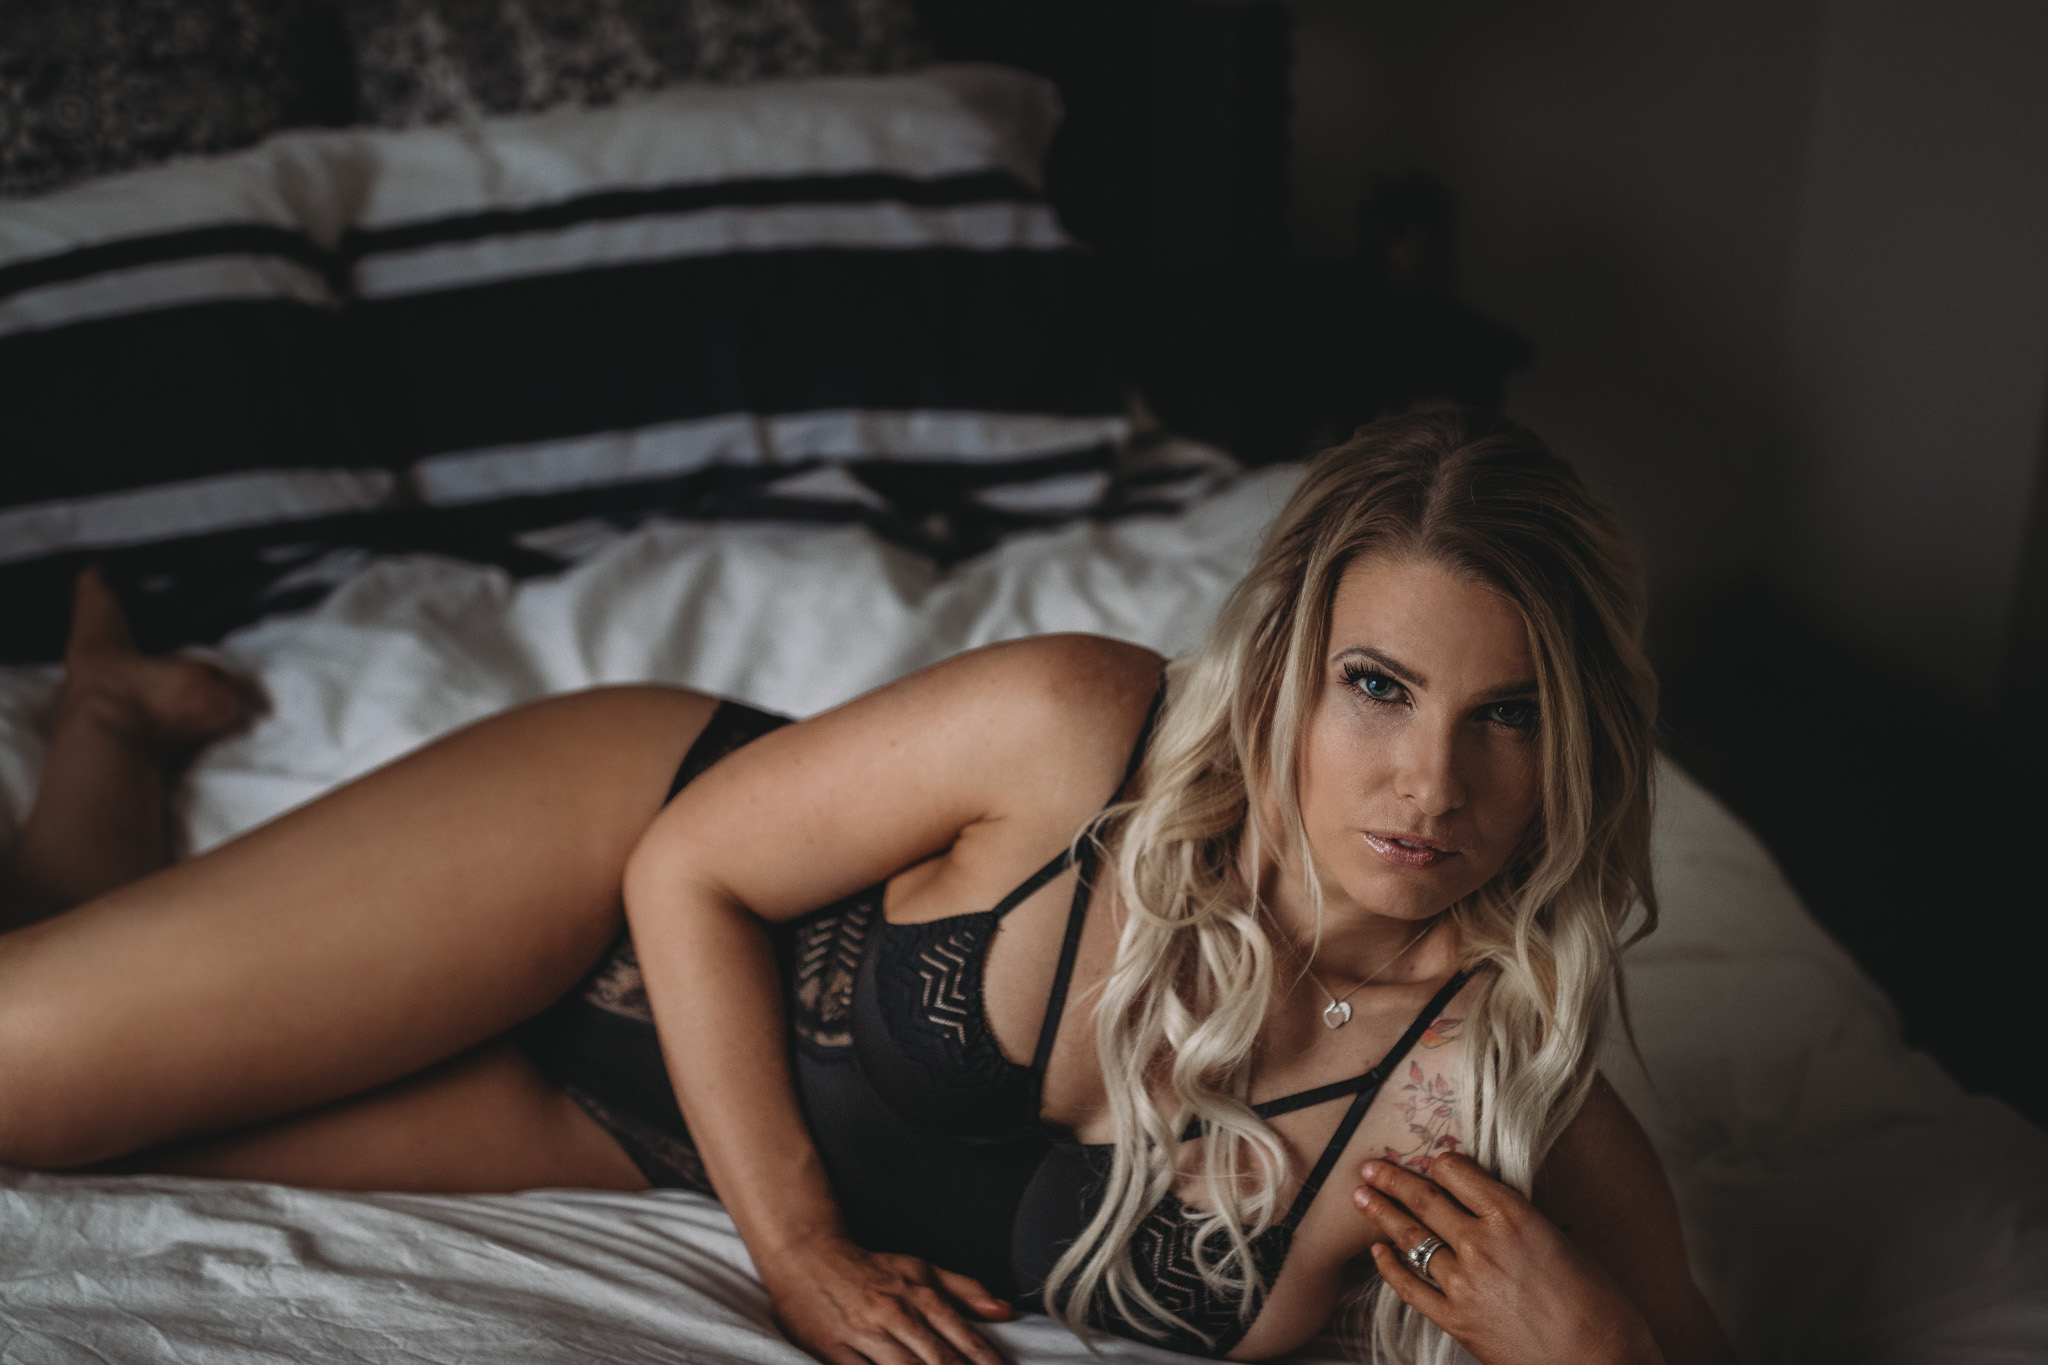 boudoir pose of girl on bed